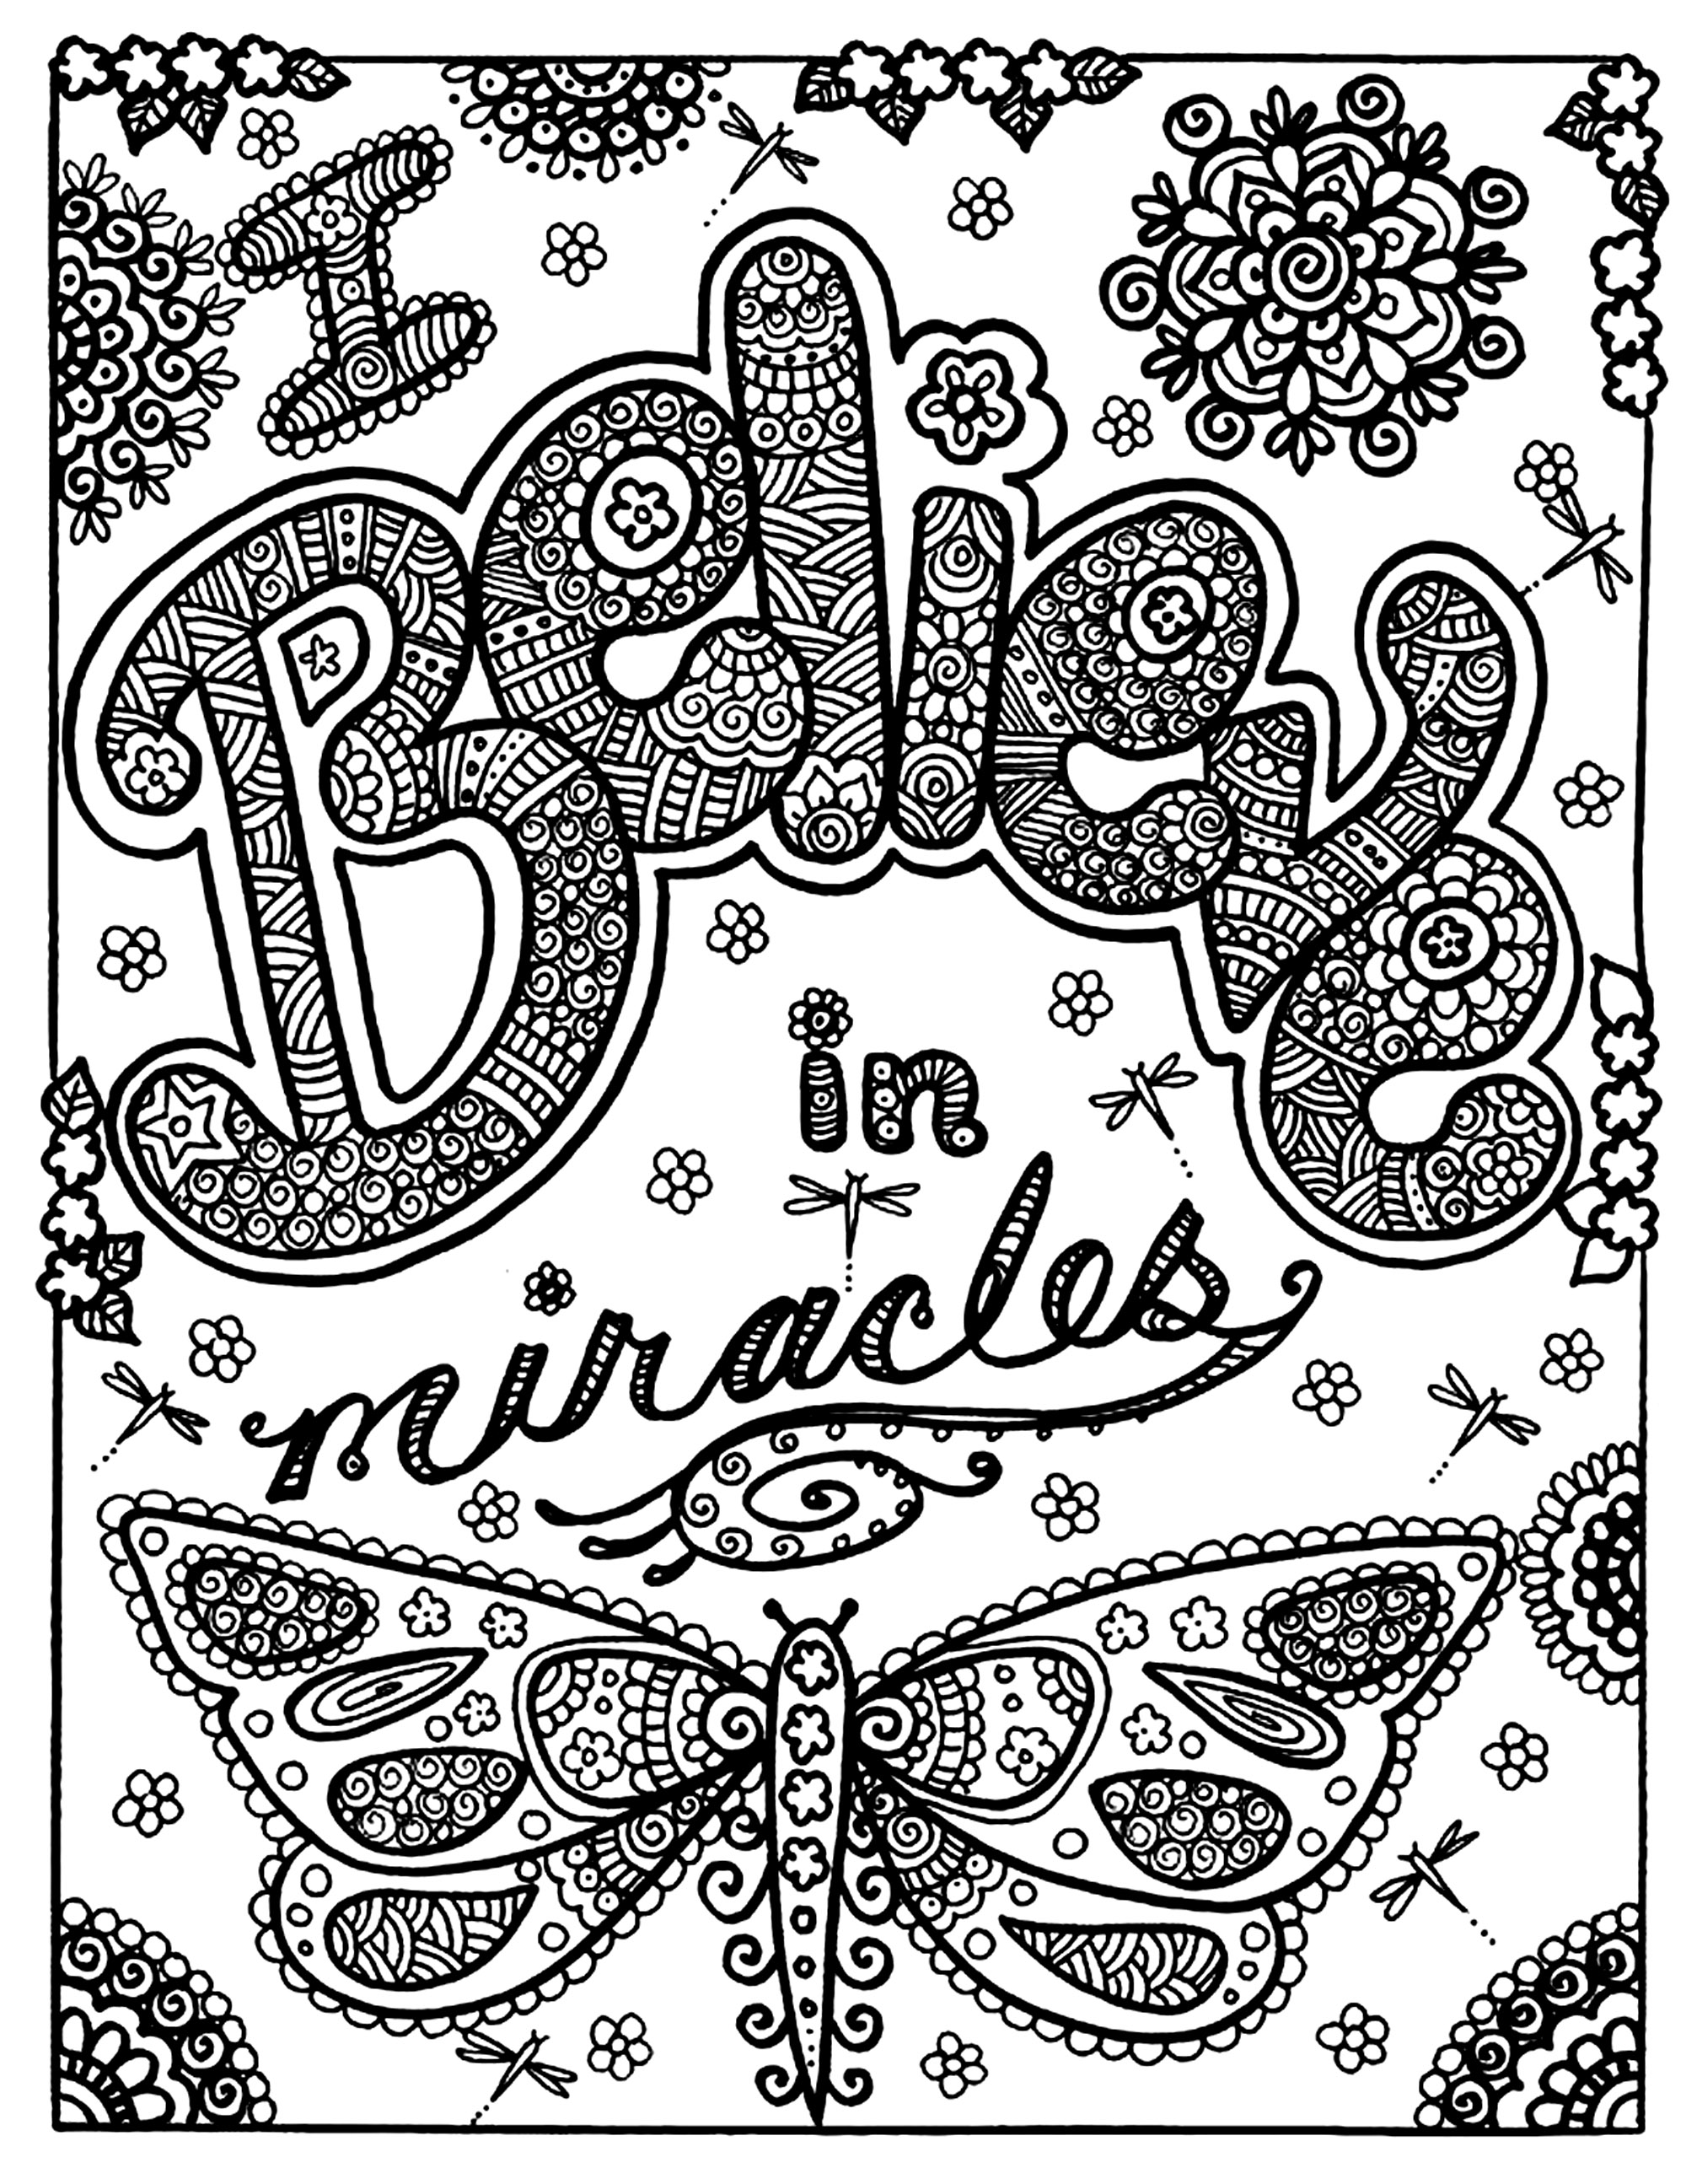 Magnificient drawing with the text 'I believe in miracles', and a beautiful butterfly ...From the gallery : Insects